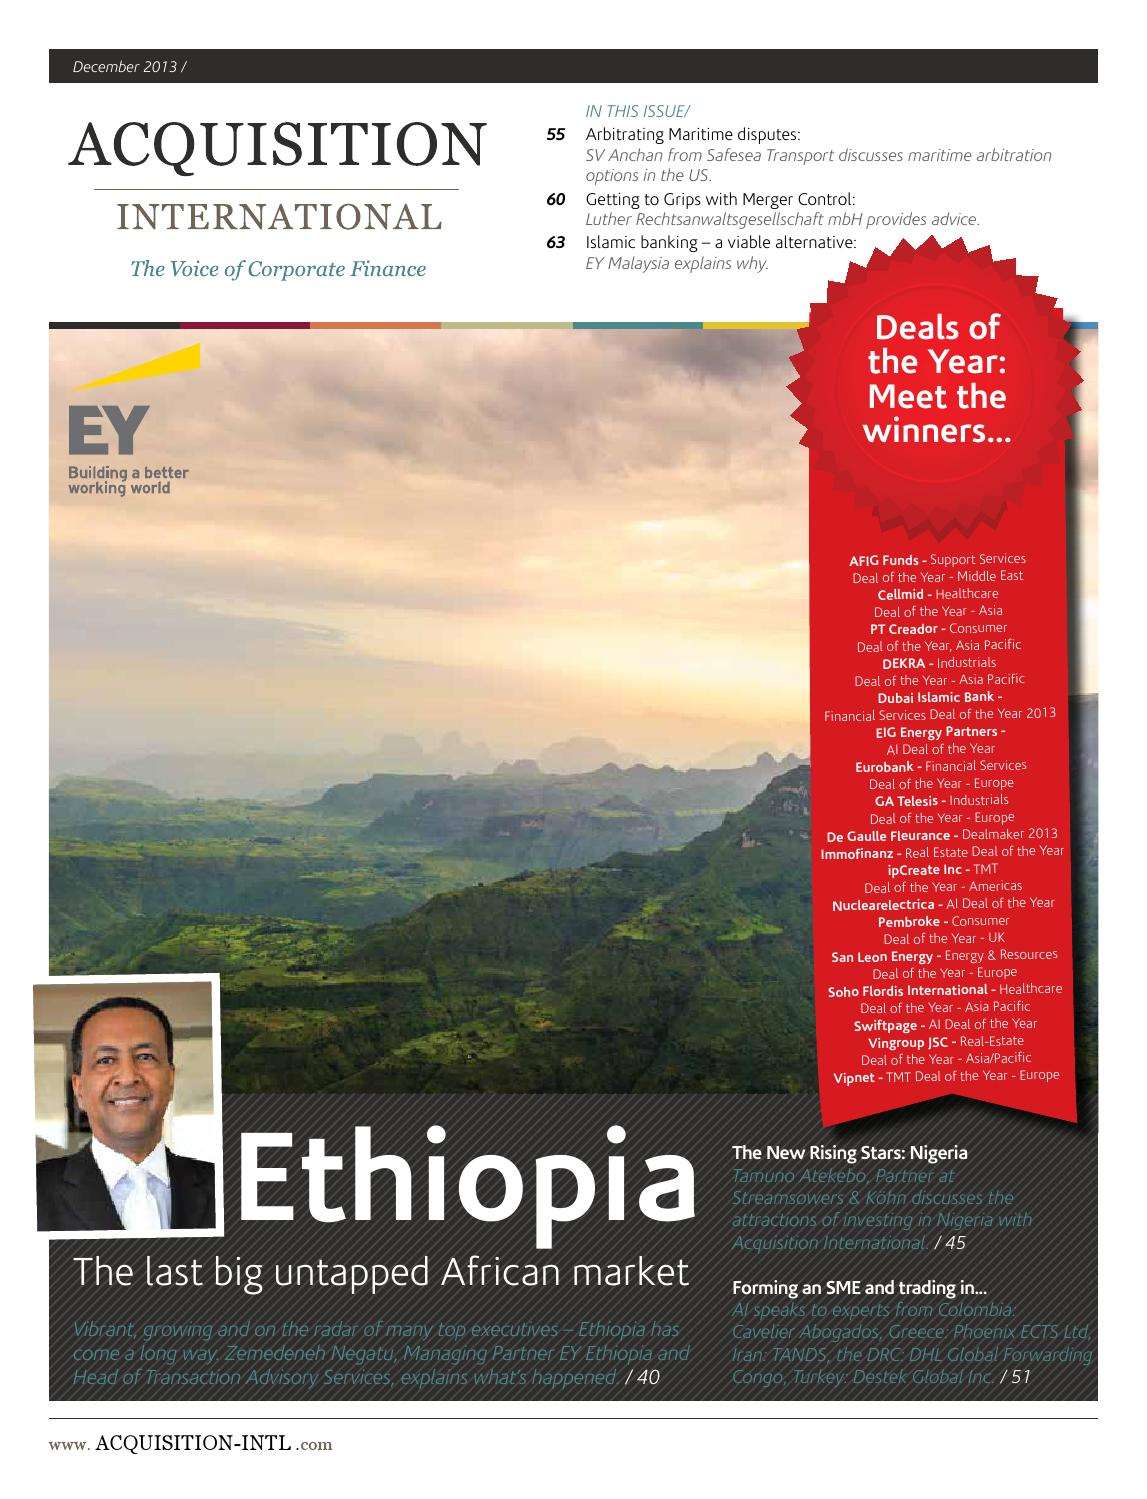 Acquisition international December 2013 by AI Global Media - issuu